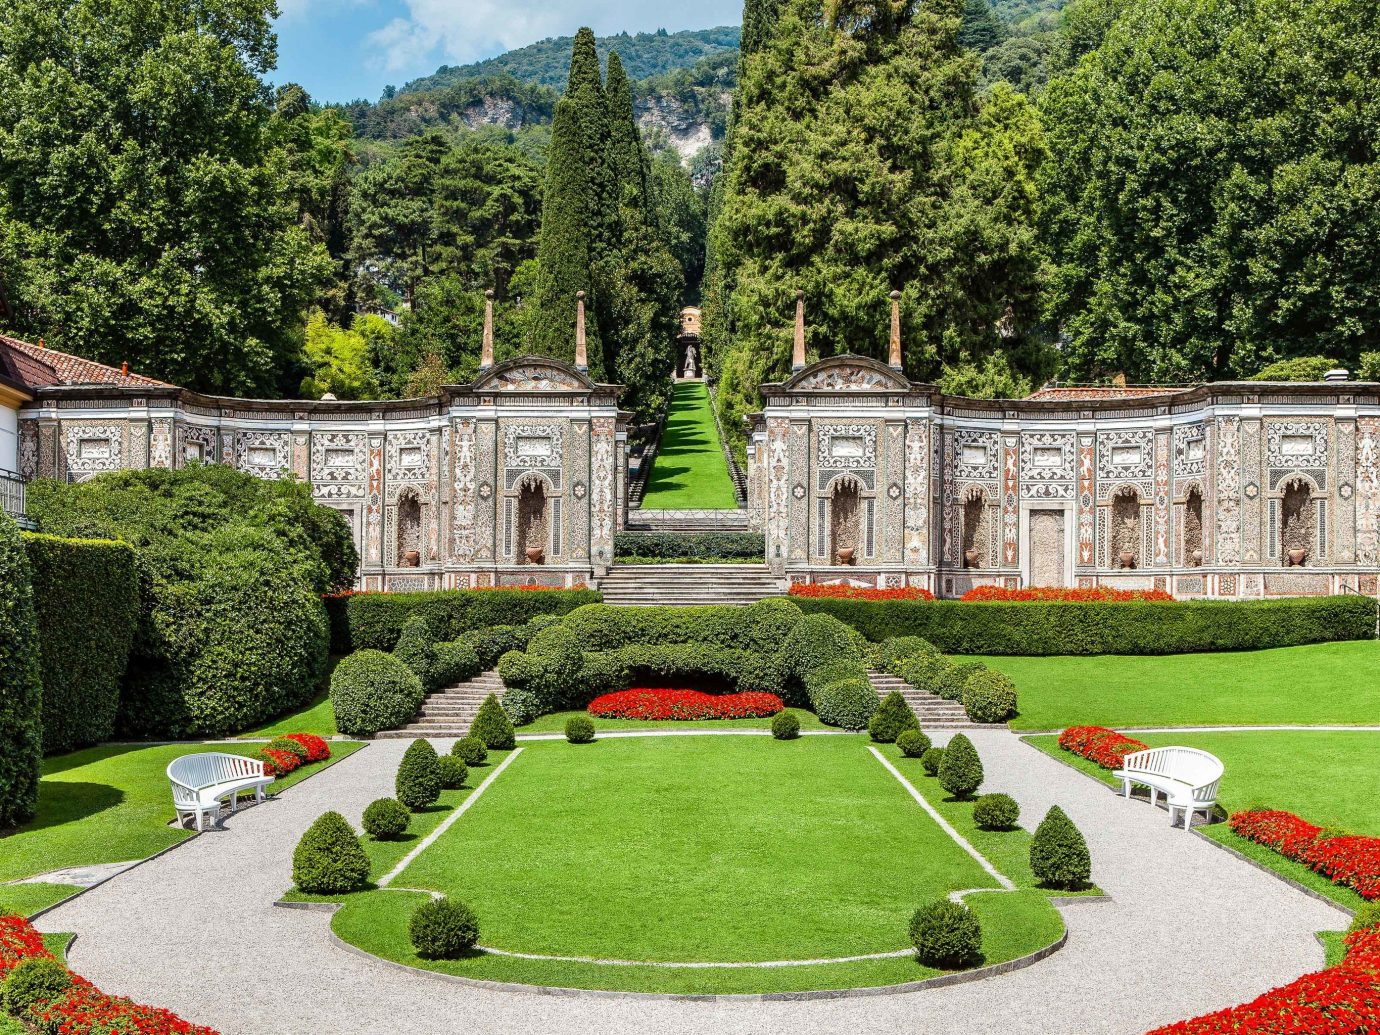 europe Trip Ideas Garden Nature green estate grass stately home château national trust for places of historic interest or natural beauty plant lawn tree landscape botanical garden mansion palace landscaping shrub historic site hedge Villa